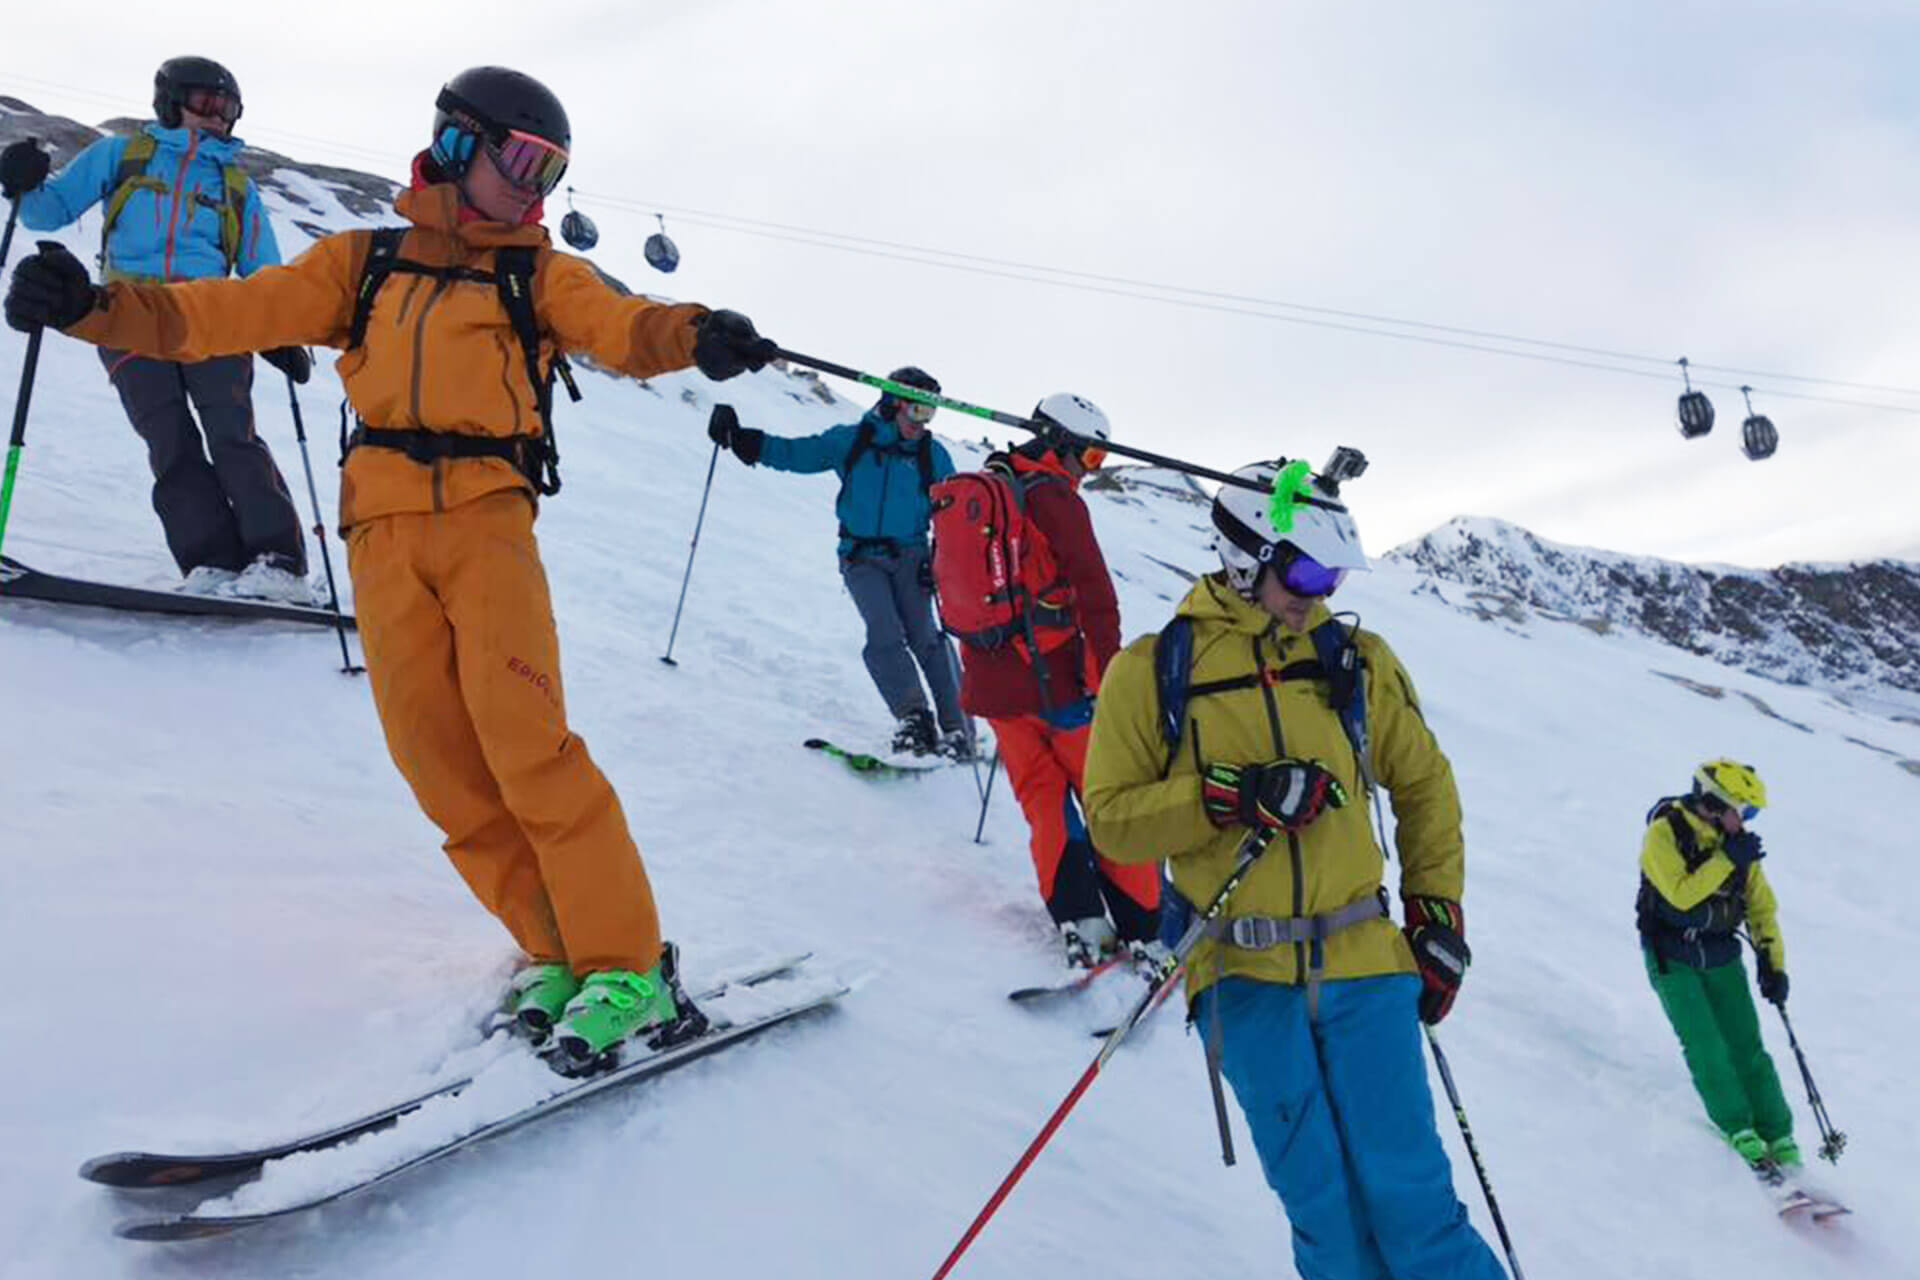 Epique - Piste ski en snowboard techniek training